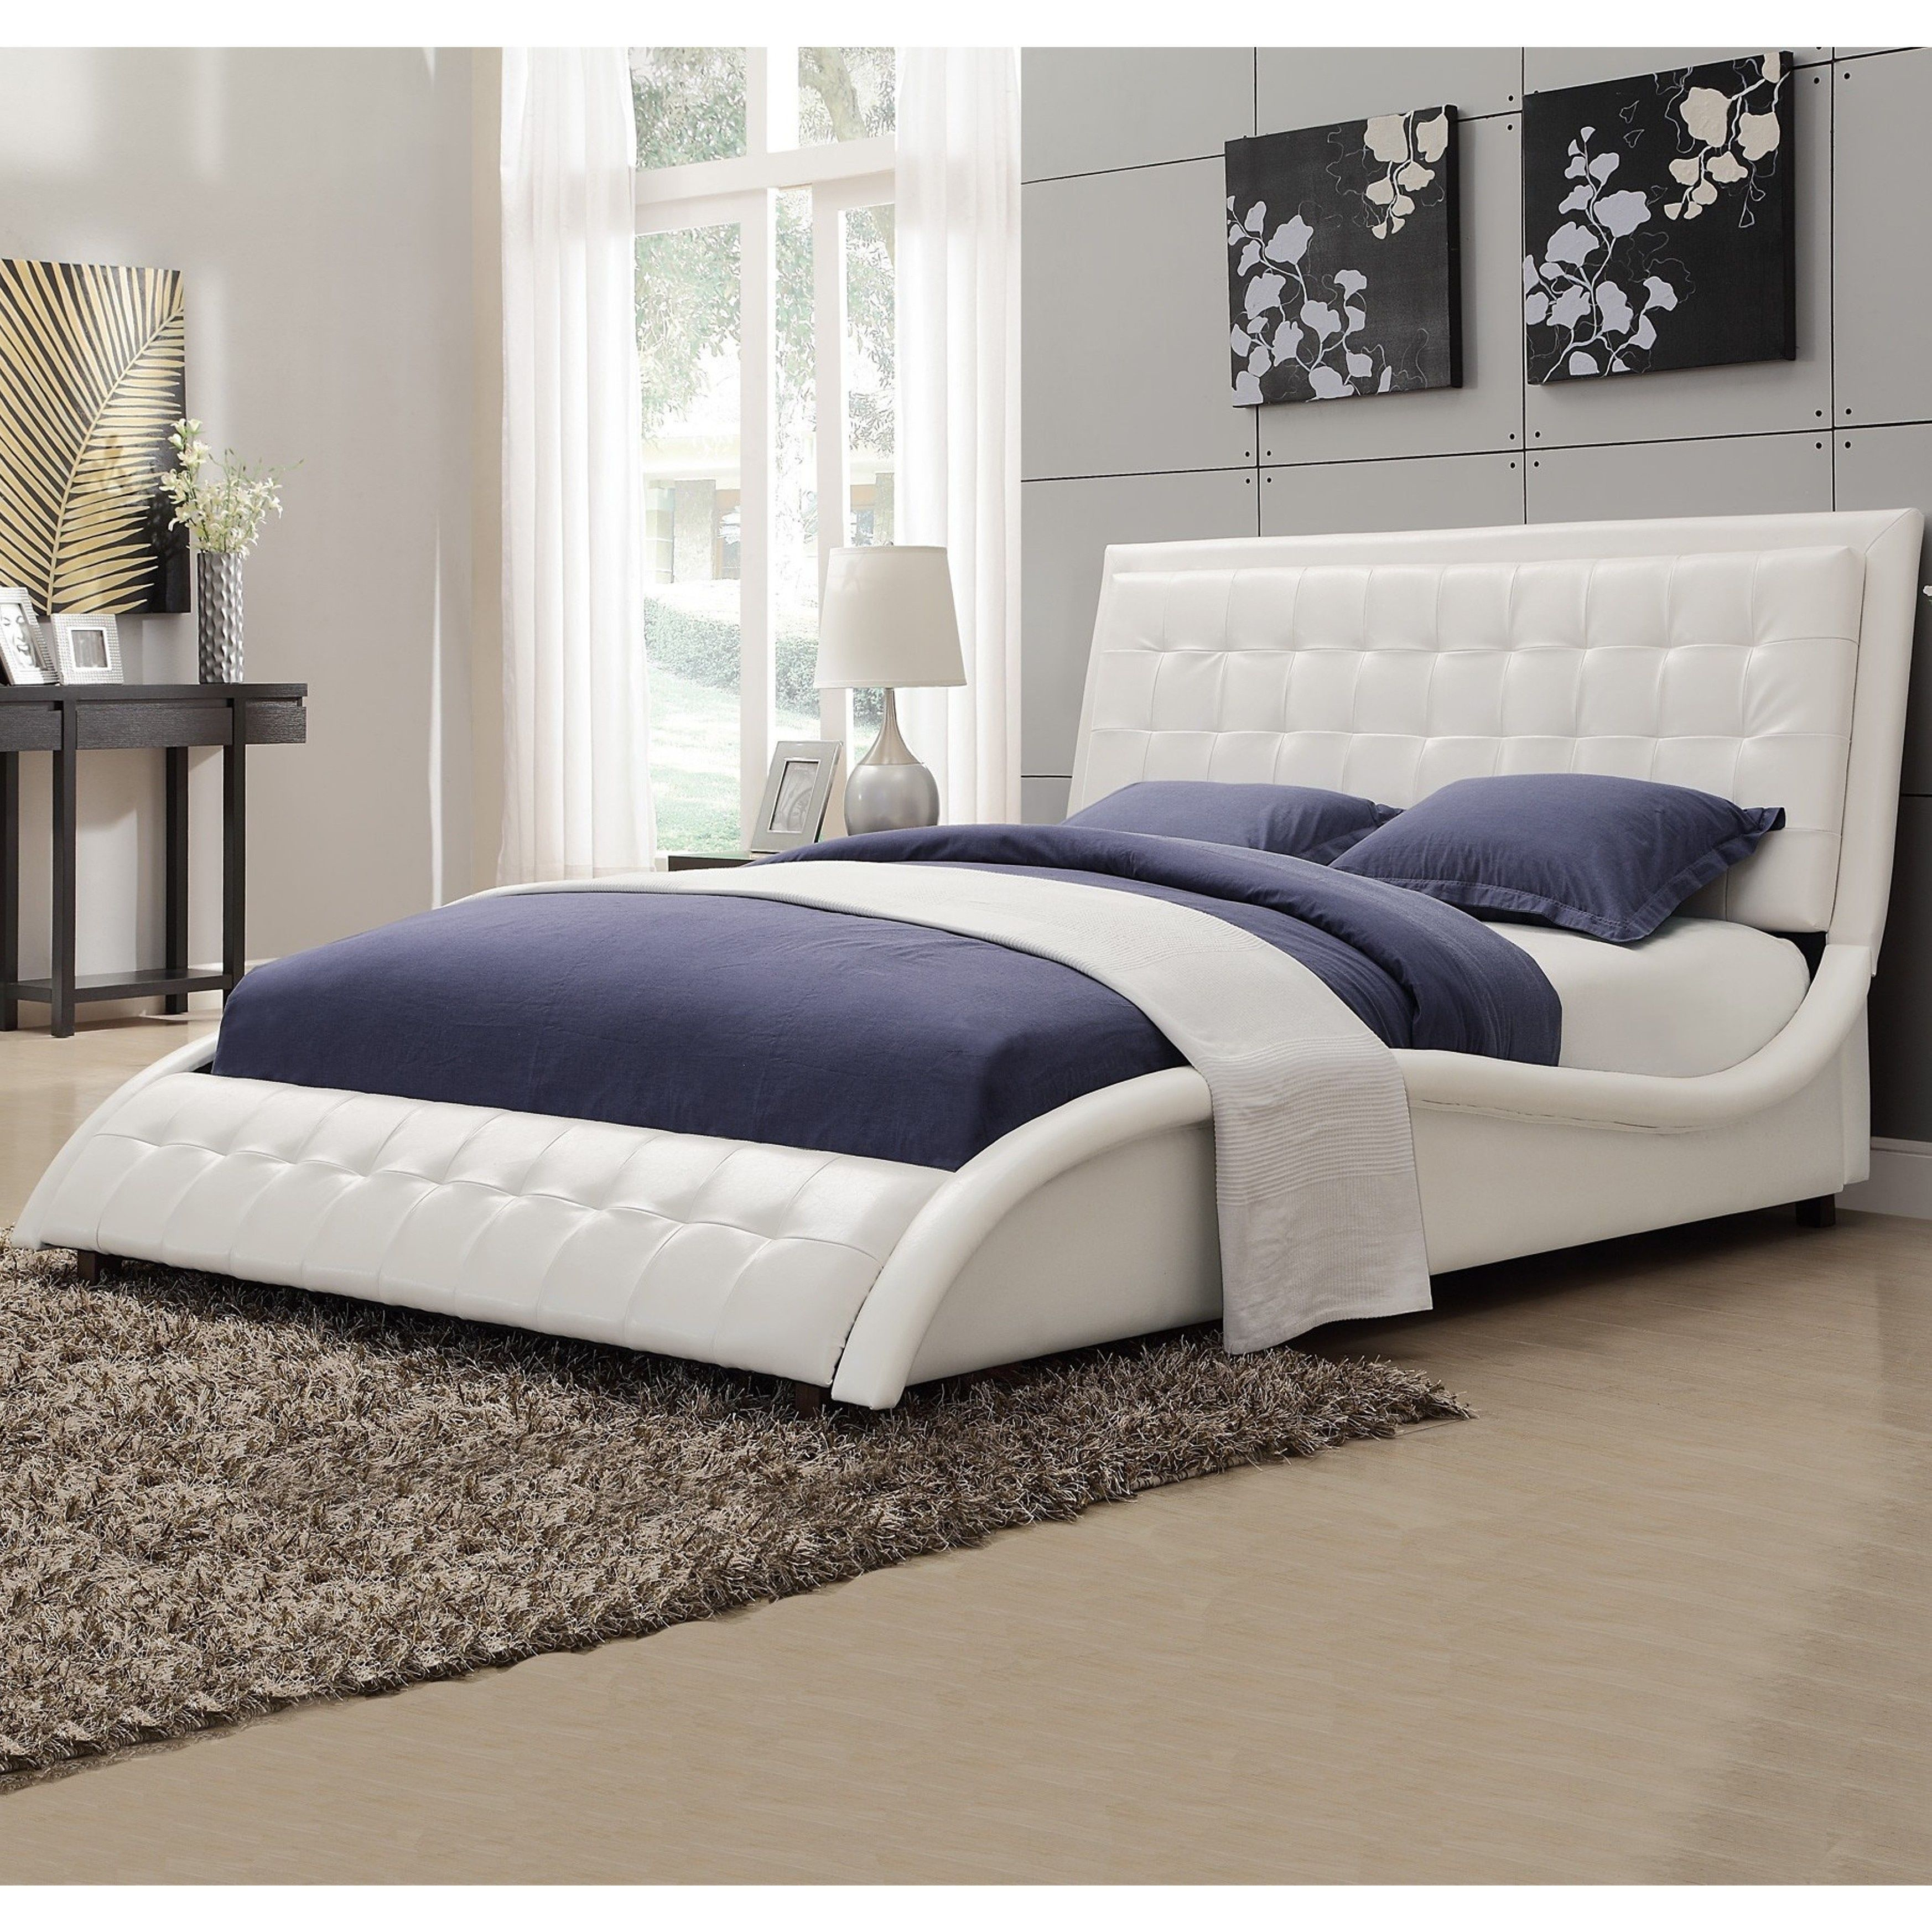 Best Modern Style Wave Design White Upholstered Bed King 400 x 300